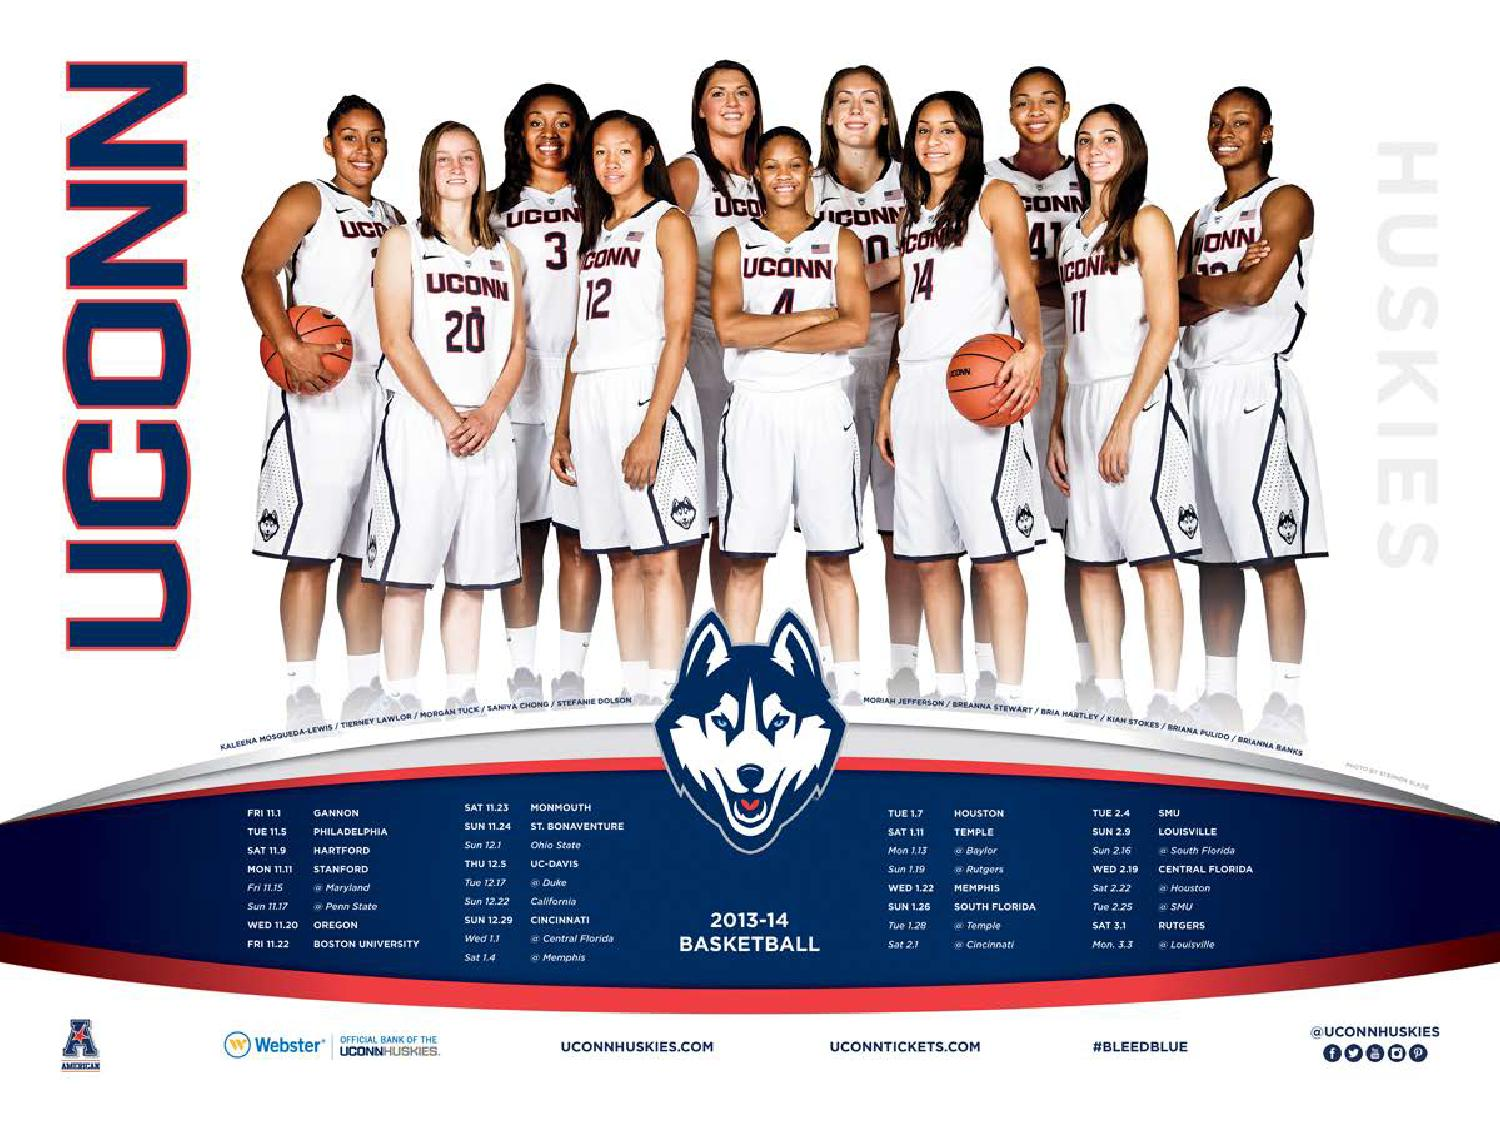 2013-14 UConn Women's Basketball Media Guide by UConn Divison of Athletics - Issuu